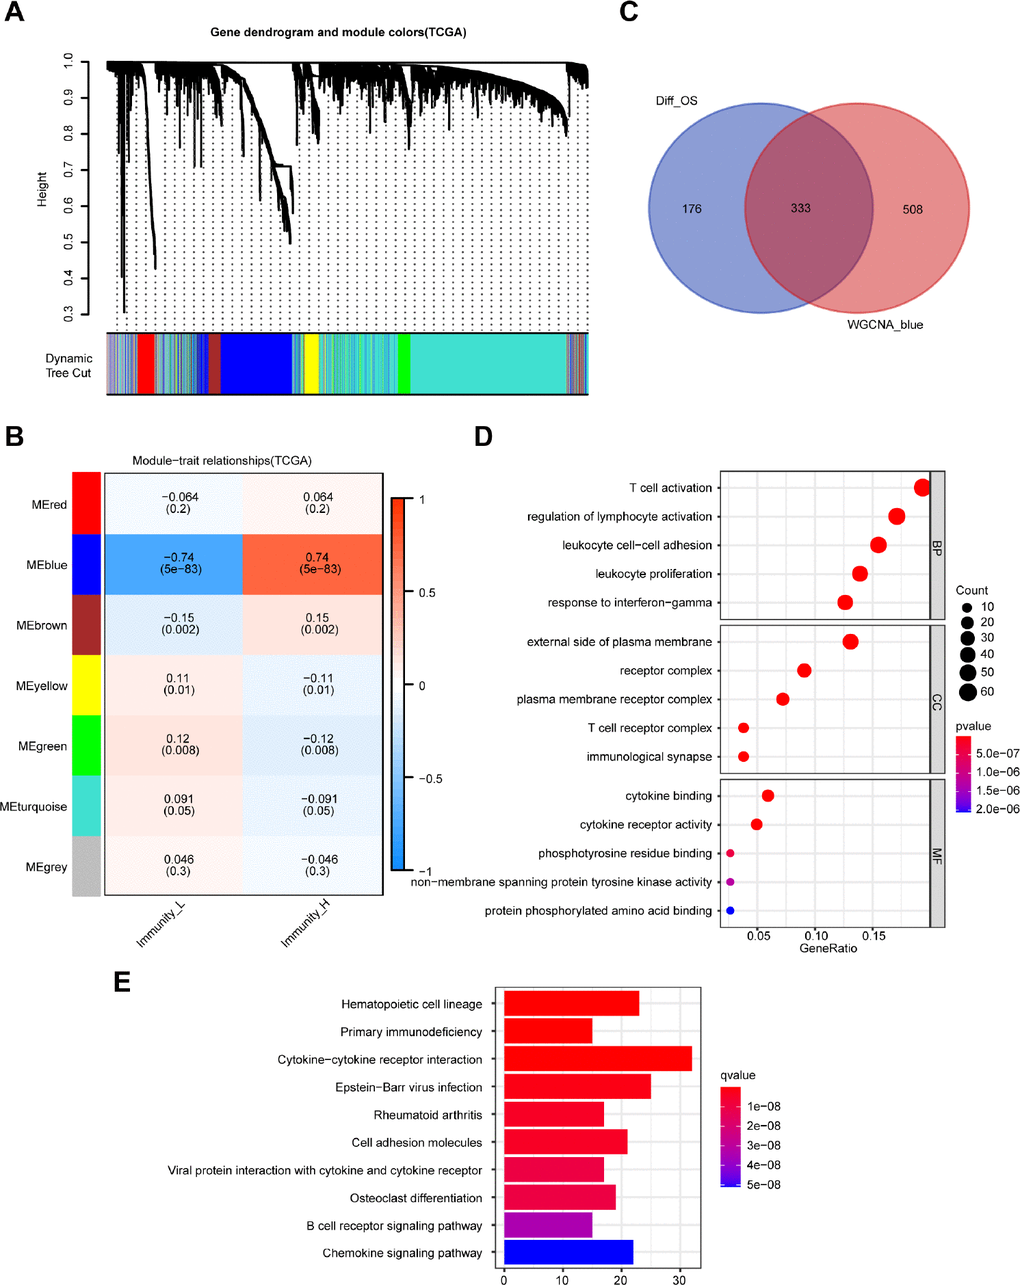 Identification of highly immune-related DEGs with prognostic value and functional analysis. (A) A hierarchical clustering dendrogram is built to detect co-expressed genes in modules in the TCGA dataset of melanoma. (B) A heatmap showing the relationships of consensus module-trait in different modules under the low and high immune cell infiltration groups. (C) Identification of 333 common DEGs from 509 DEGs with prognostic value and the blue module using the Venn diagram software. (D) Top 15 GO terms. (E) Top 10 KEGG pathways.